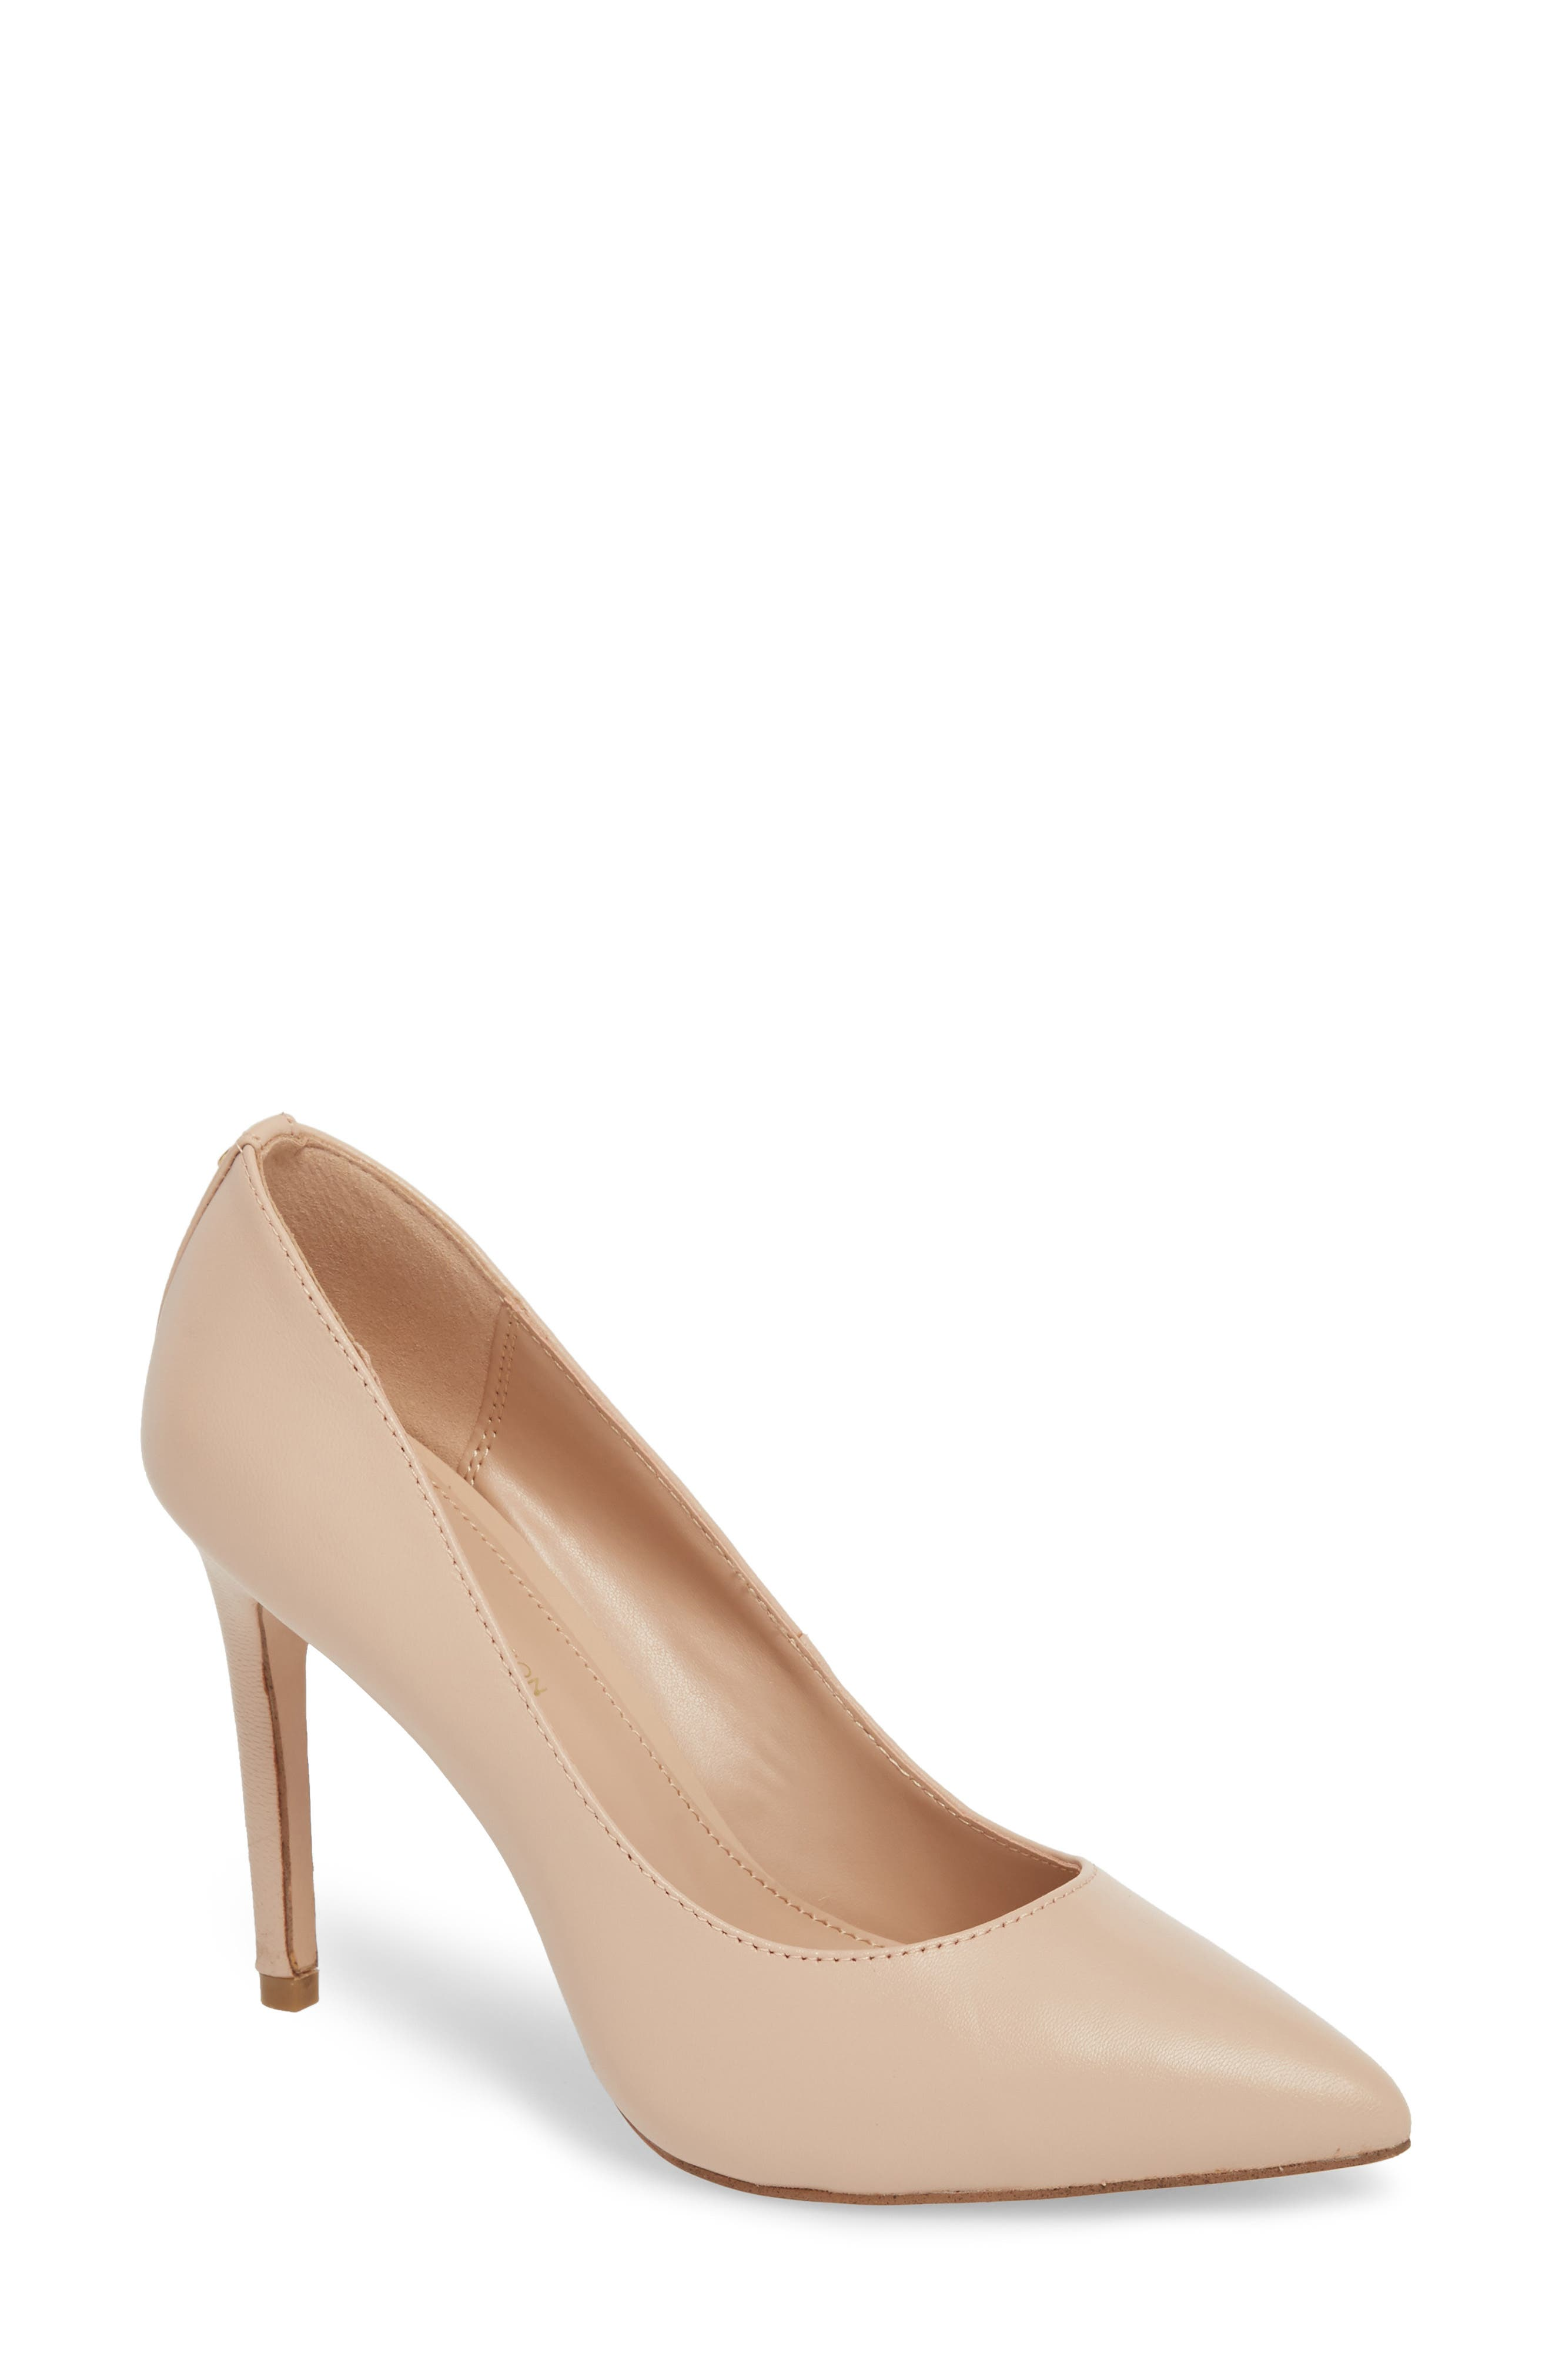 BCBG Heidi Pump, Main, color, SHELL LEATHER